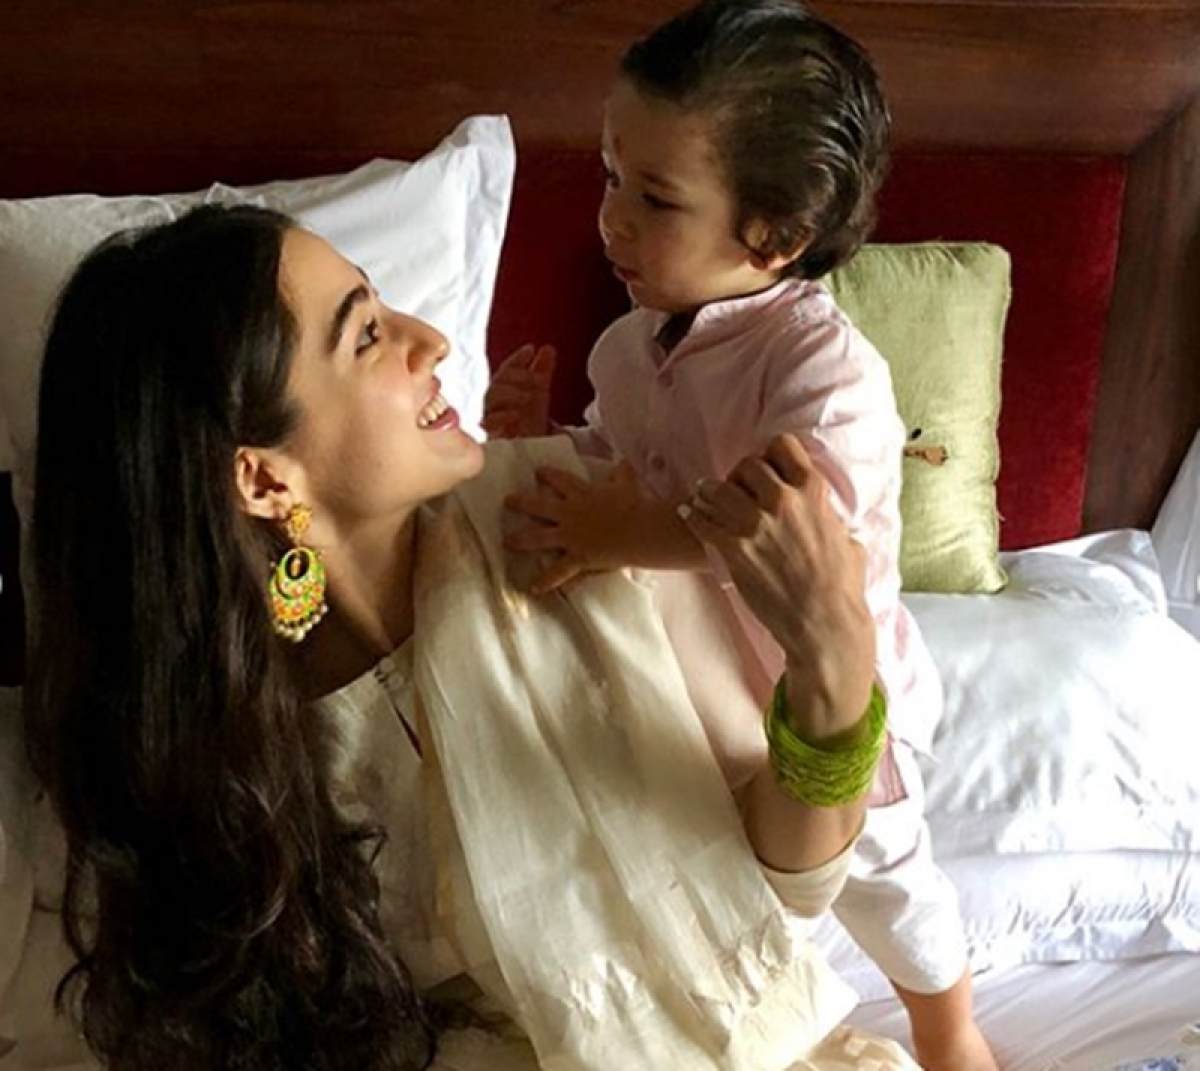 Junior Nawab Taimur has a 'special' name for sister Sara Ali Khan; find out